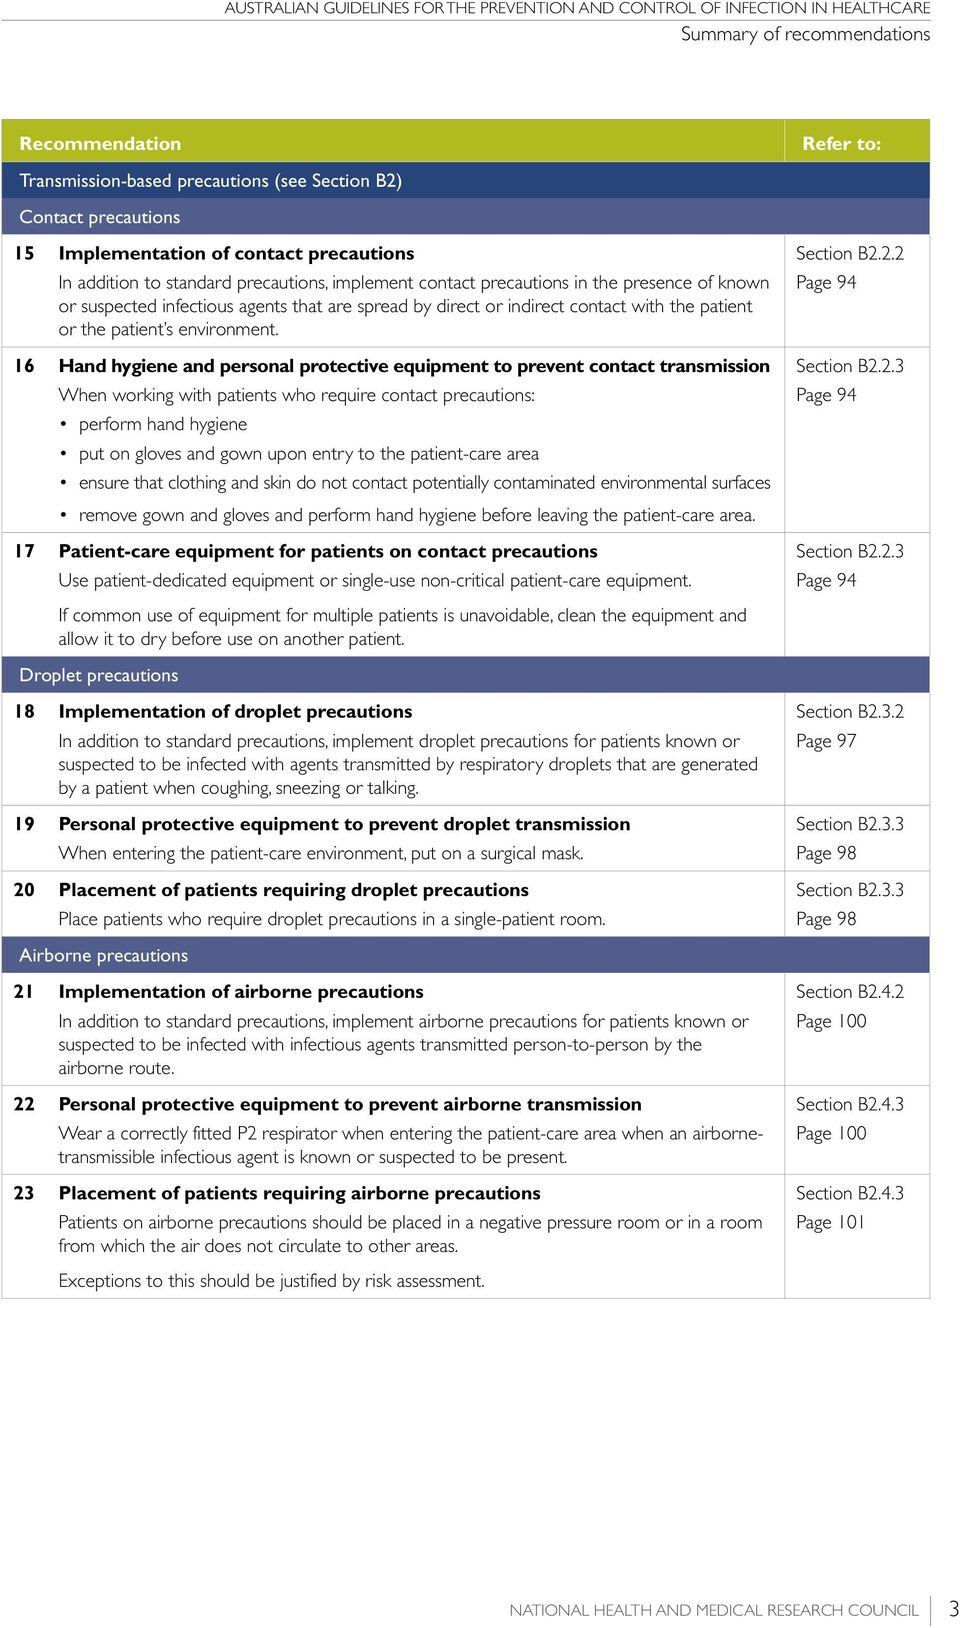 16 Hand hygiene and personal protective equipment to prevent contact transmission When working with patients who require contact precautions: perform hand hygiene put on gloves and gown upon entry to